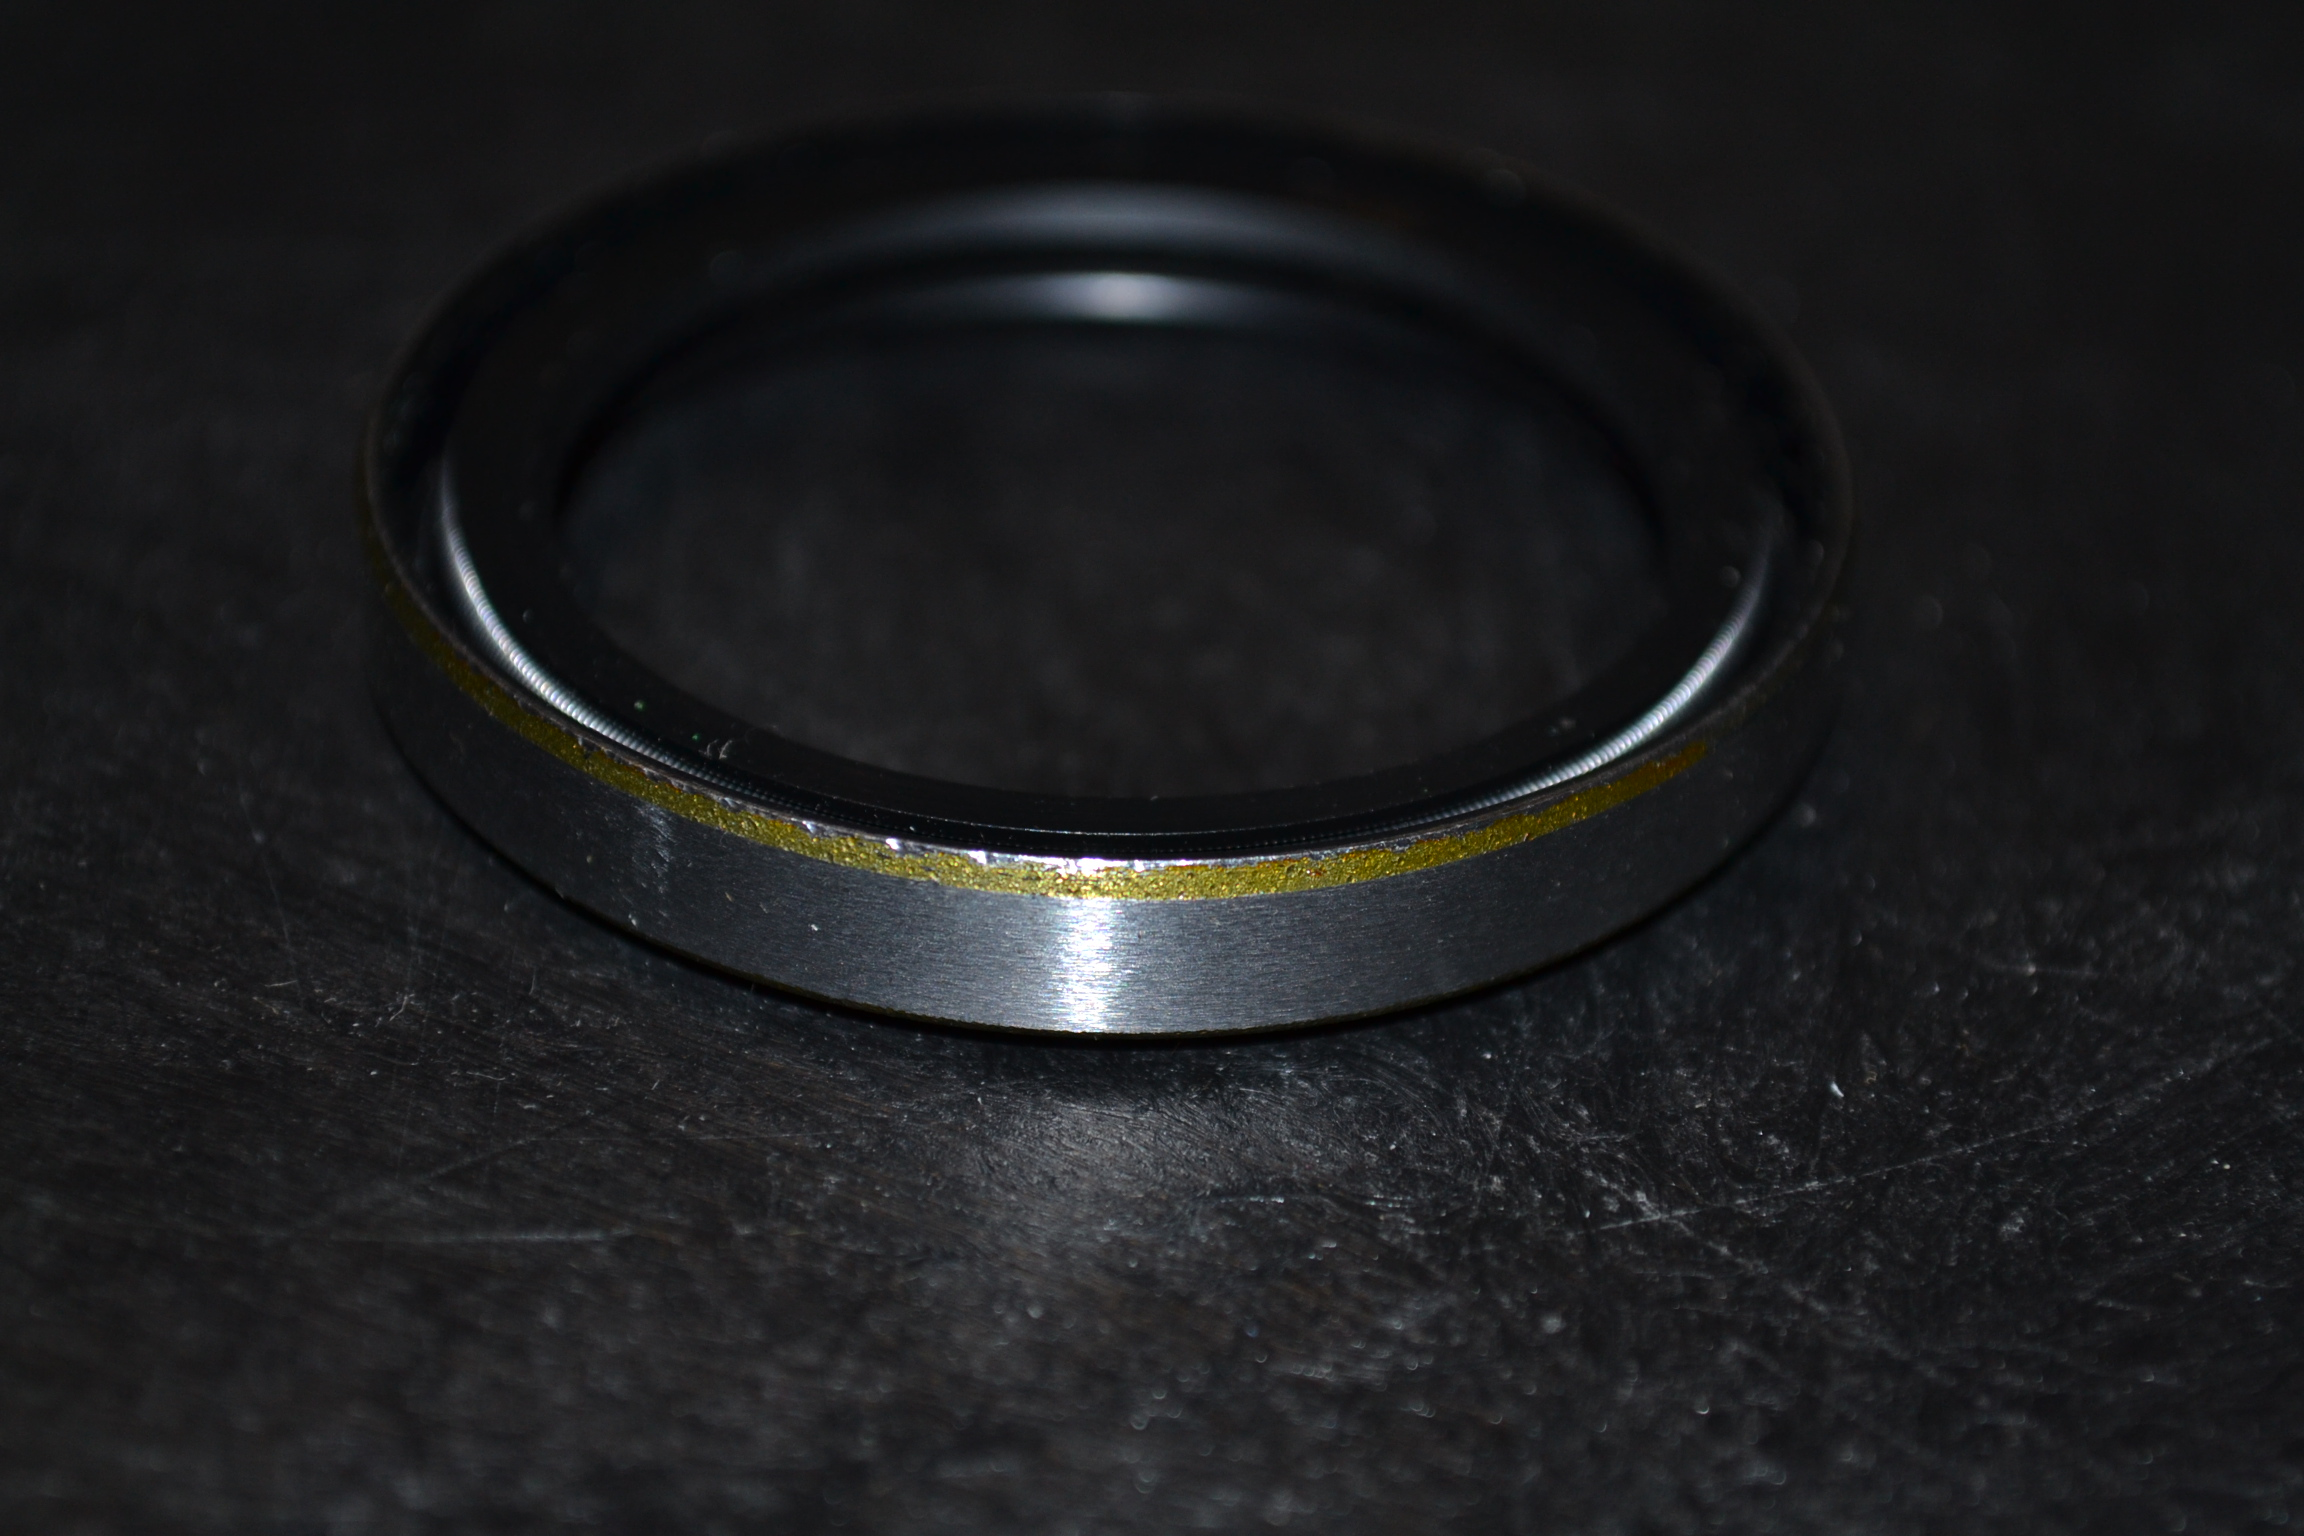 Skf 16892 Metric Mod Grease Seals